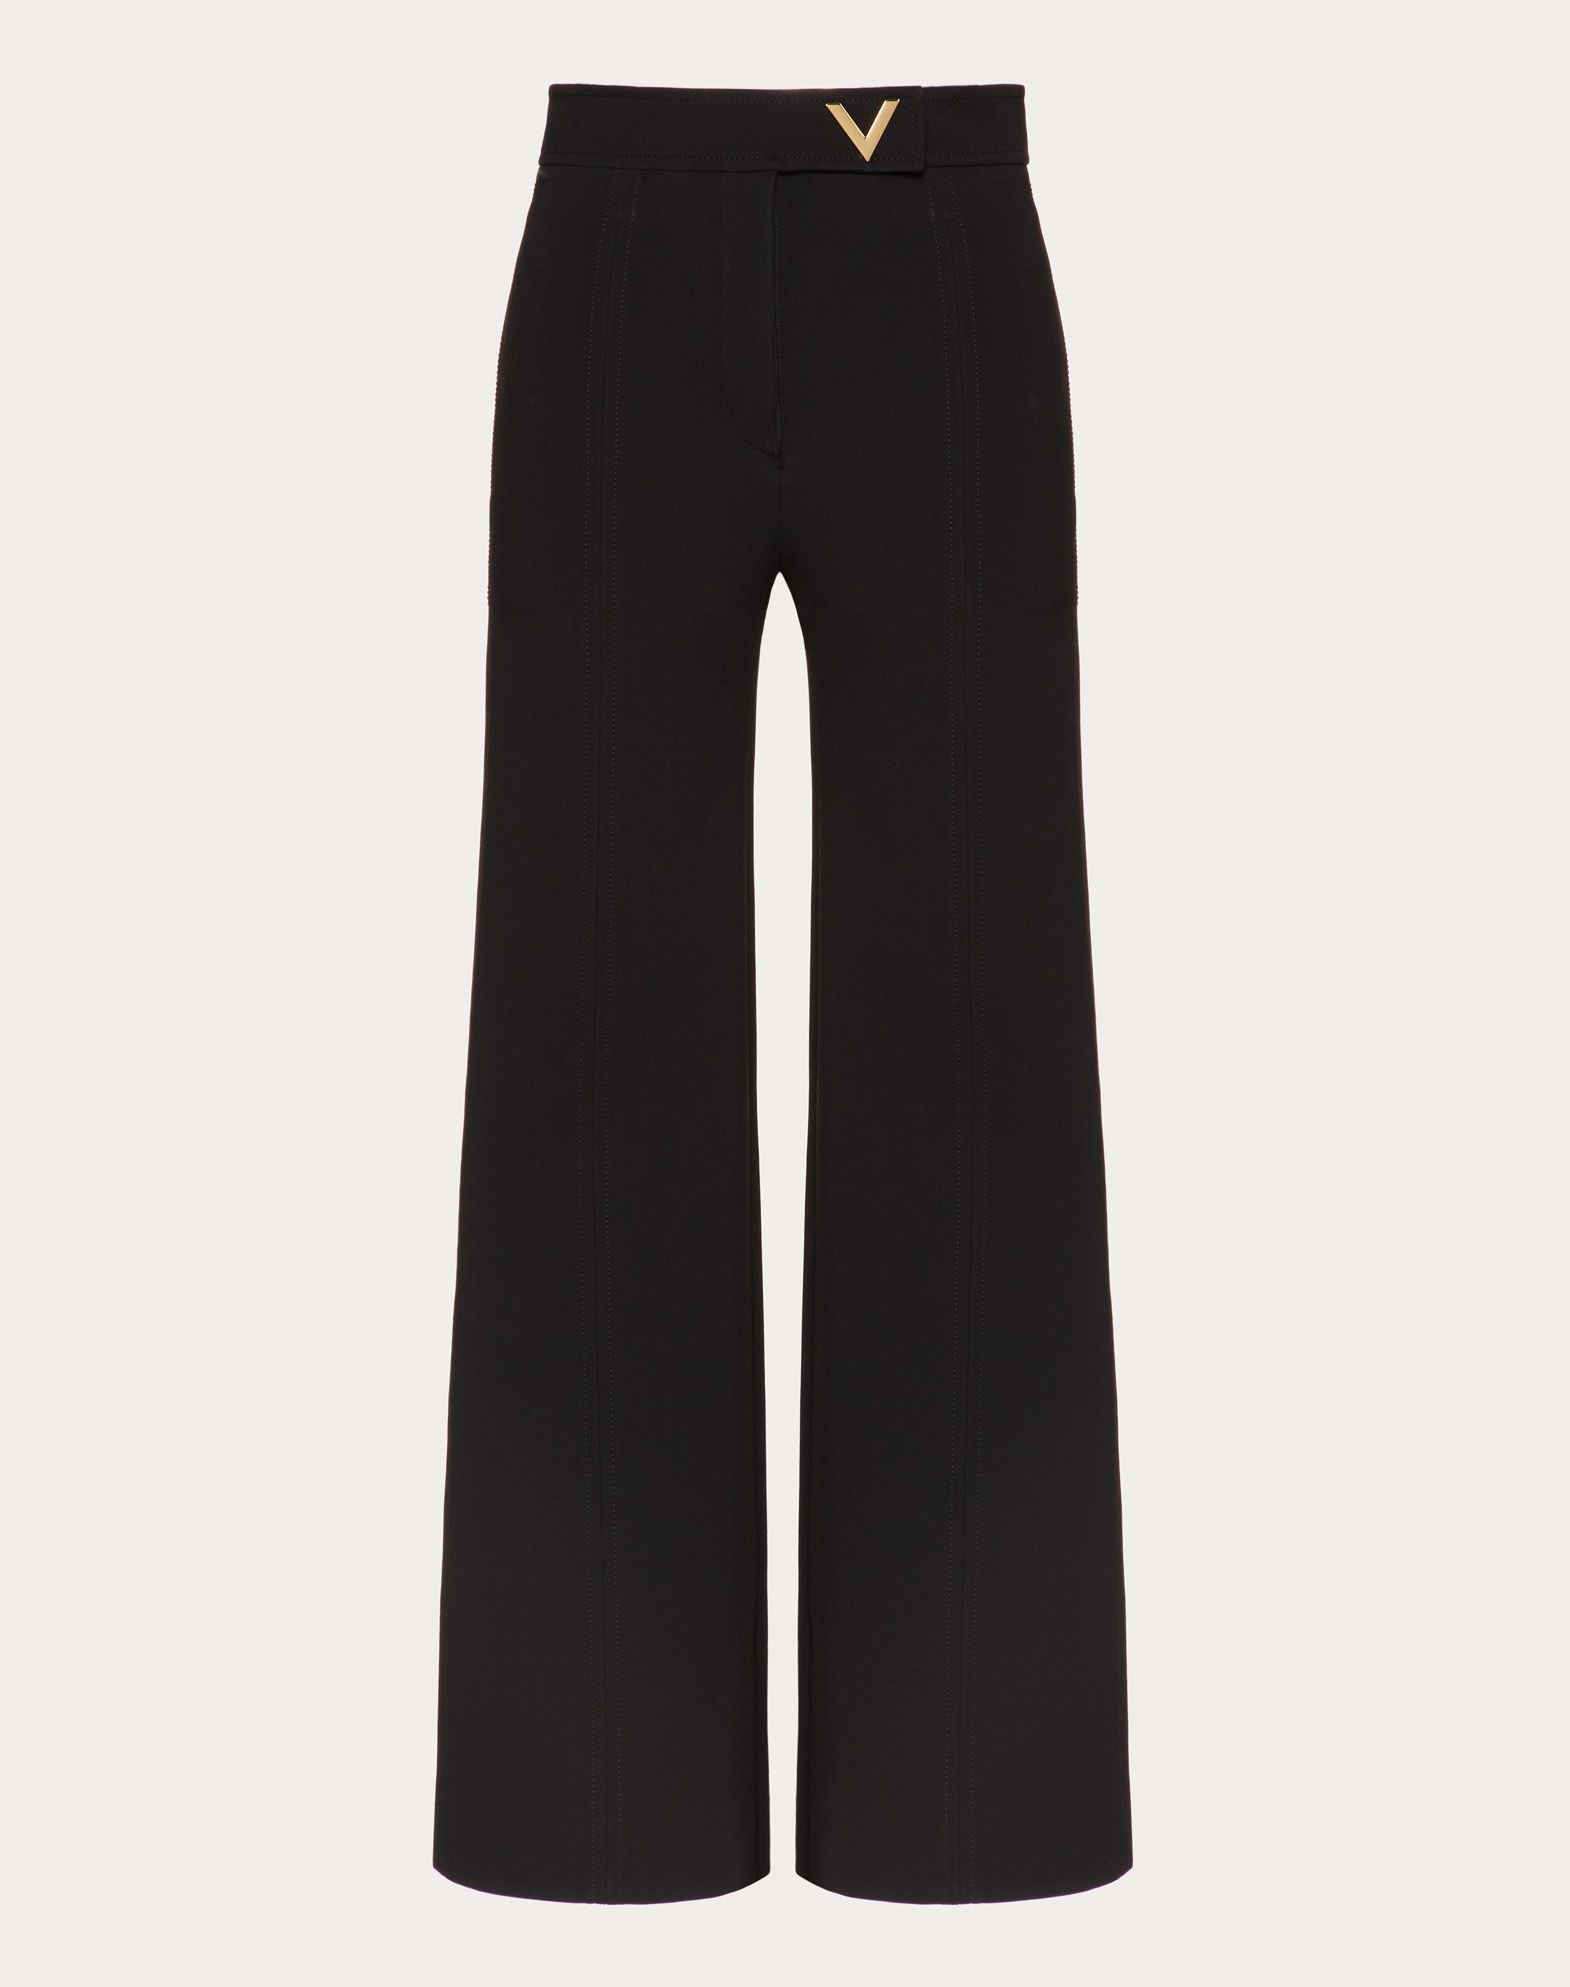 VGOLD Crepe-Jersey Trousers